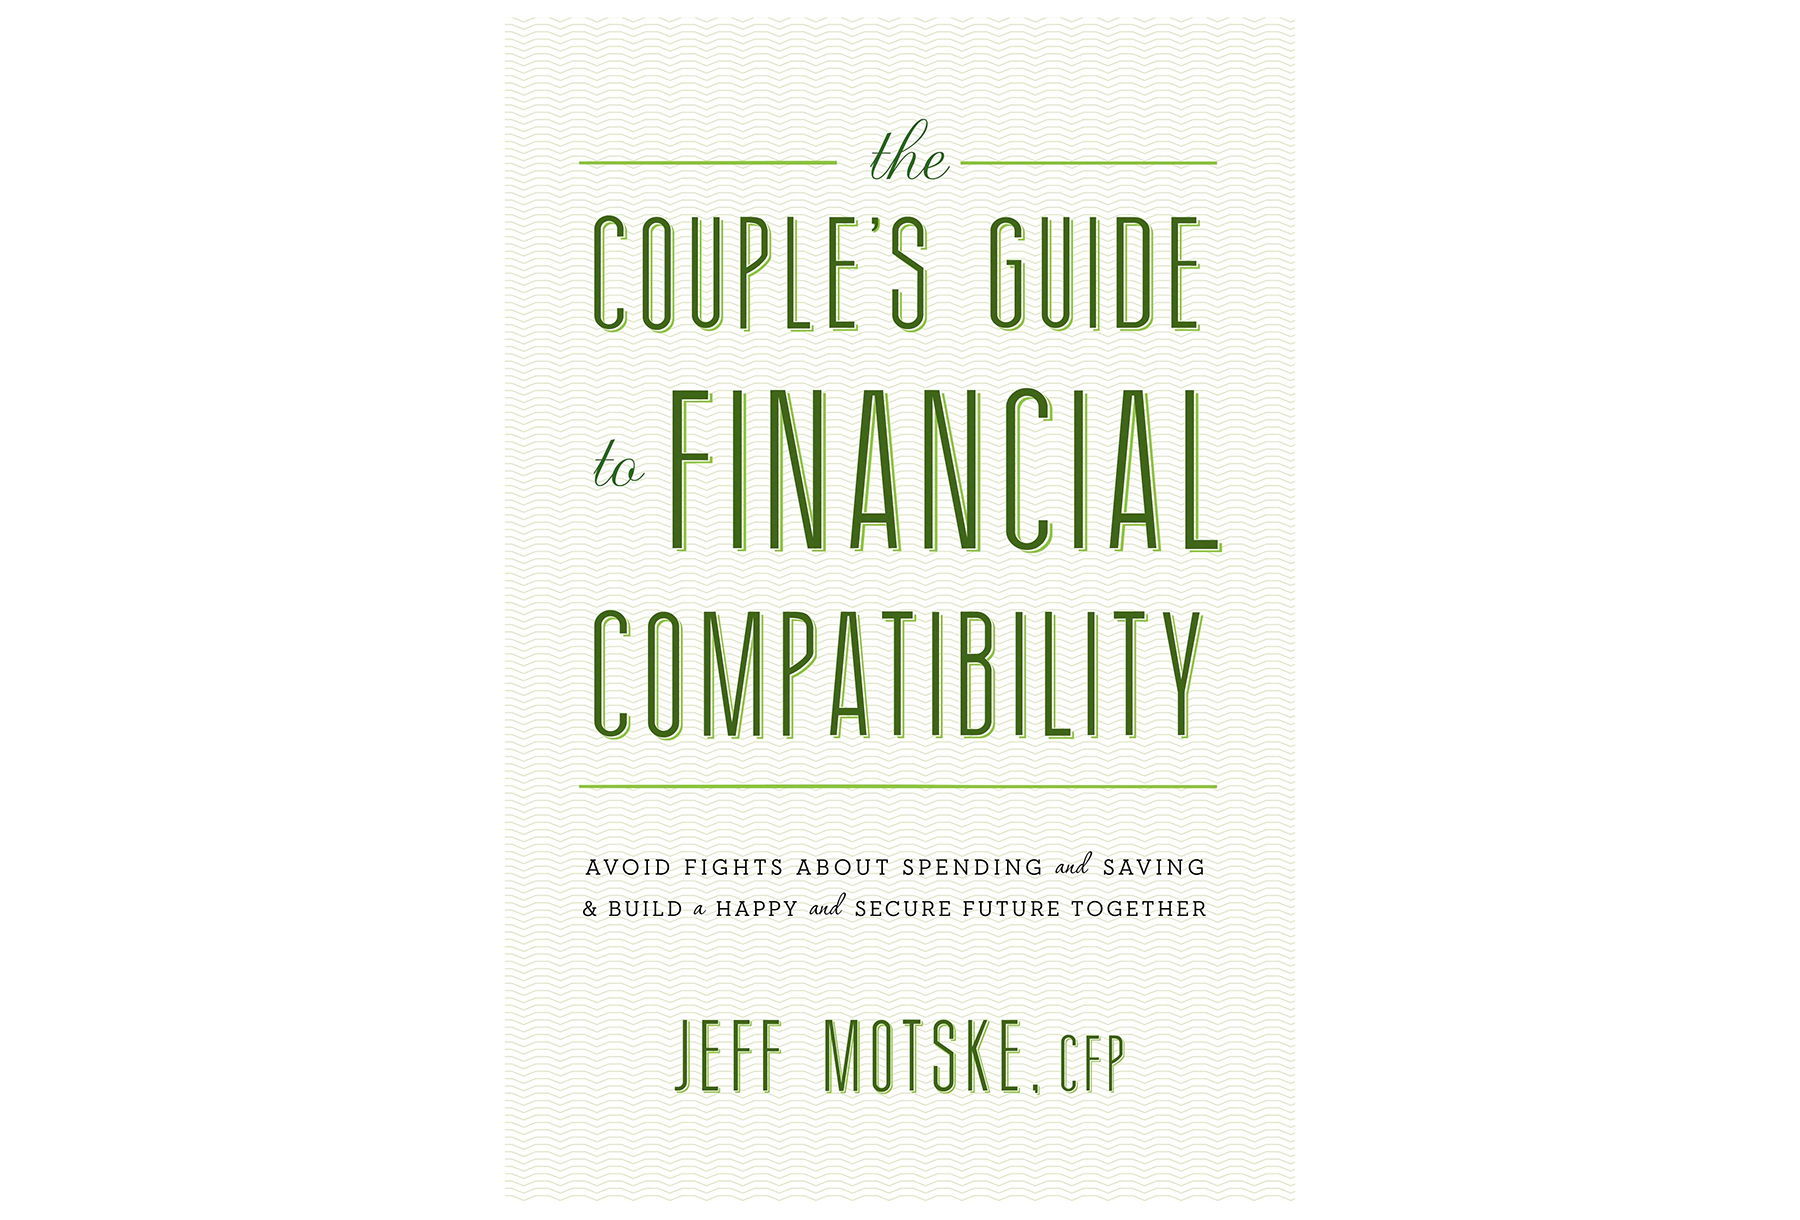 The Couple's Guide to Financial Compatibility, by Jeff Motske